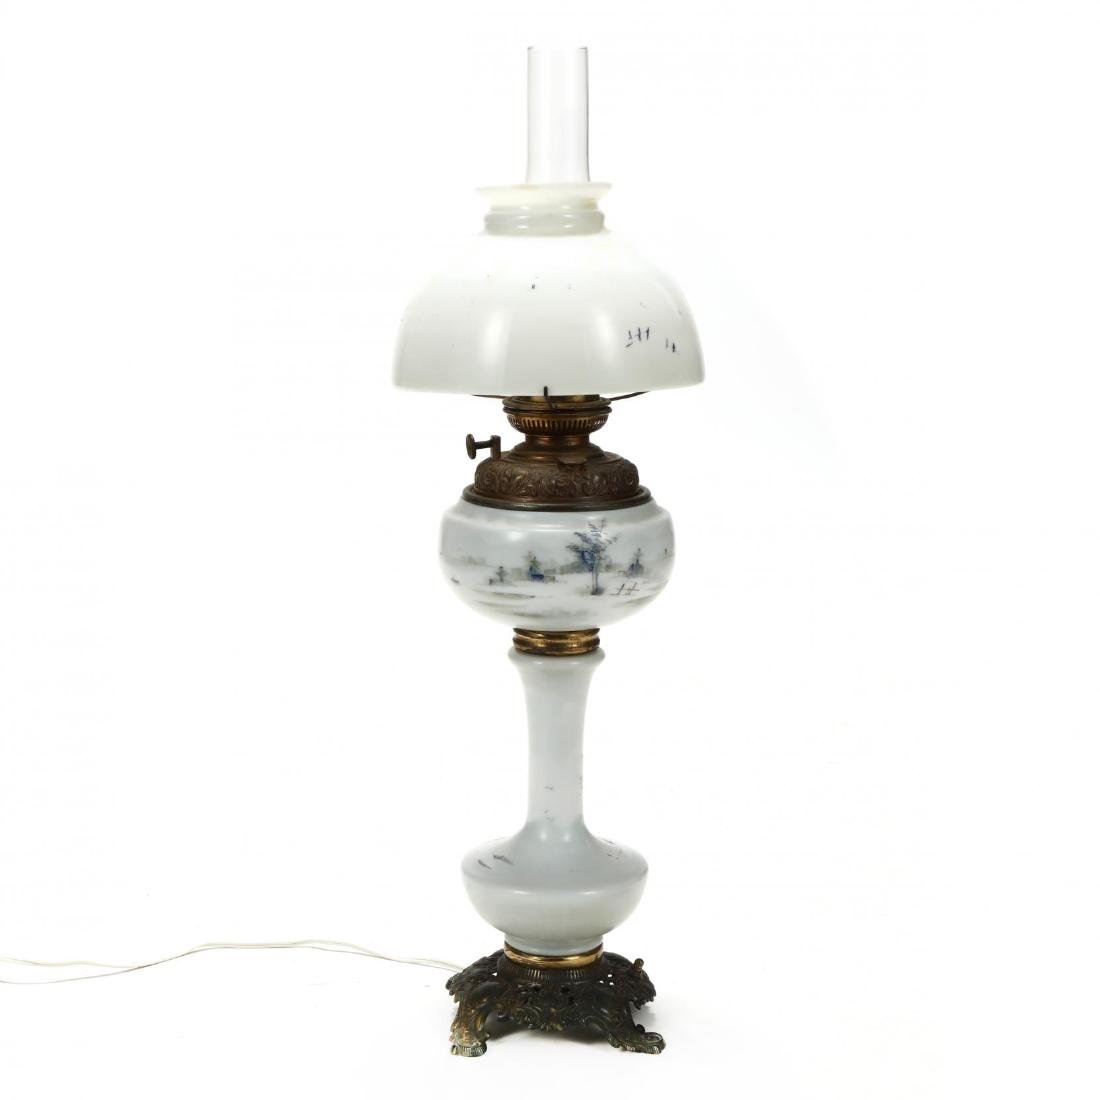 Plume & Atwood, Victorian Painted Glass Oil Lamp - 5